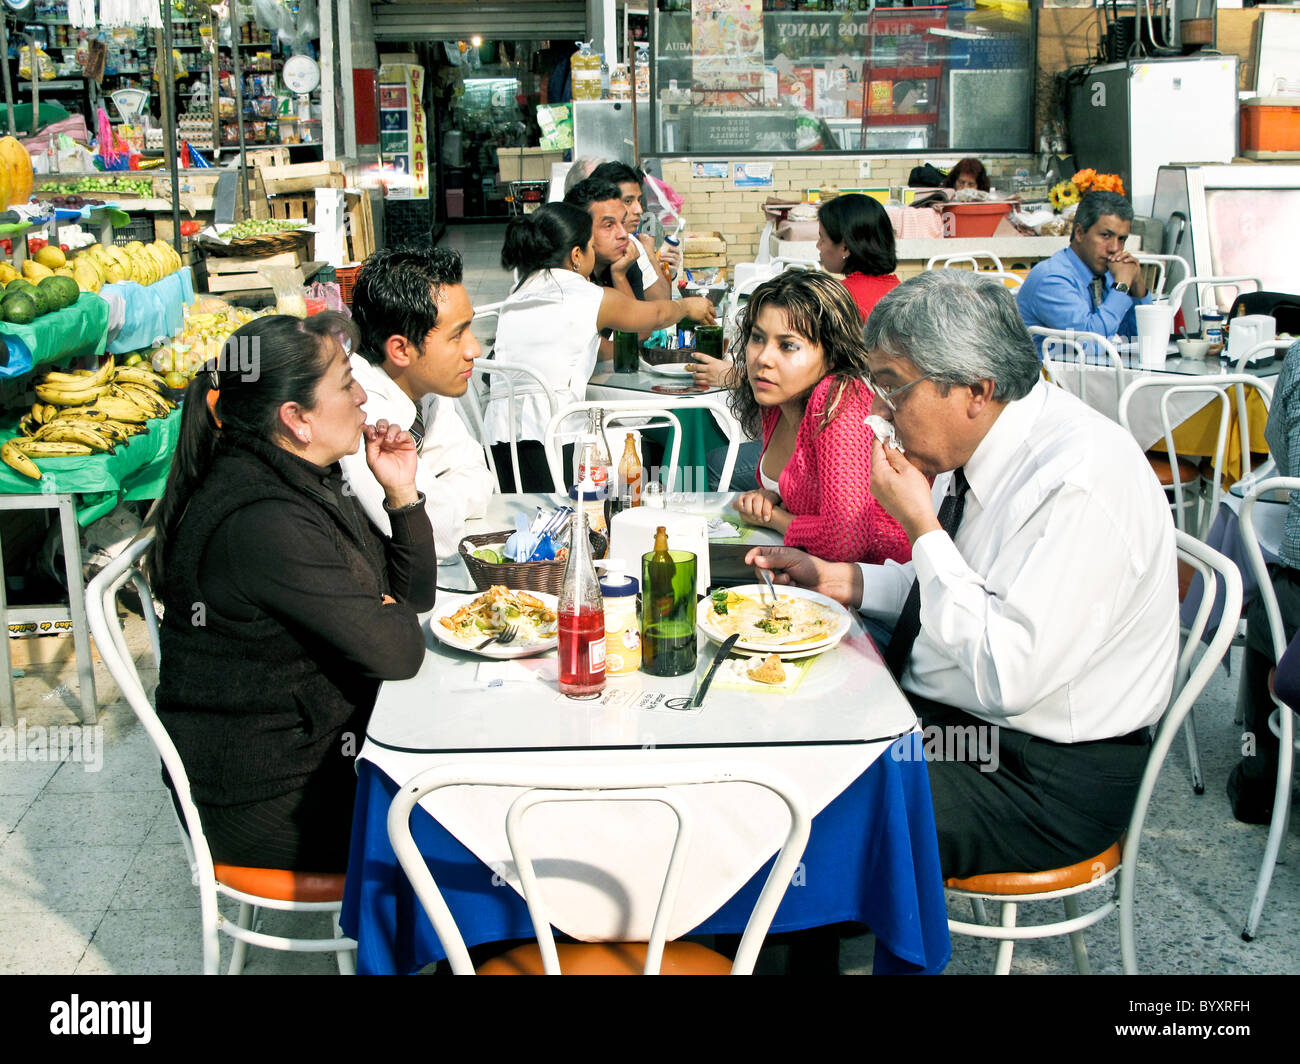 Mexican diners enjoy plates of hearty simple food in bright colorful restaurant area  Medellin market Roma district - Stock Image